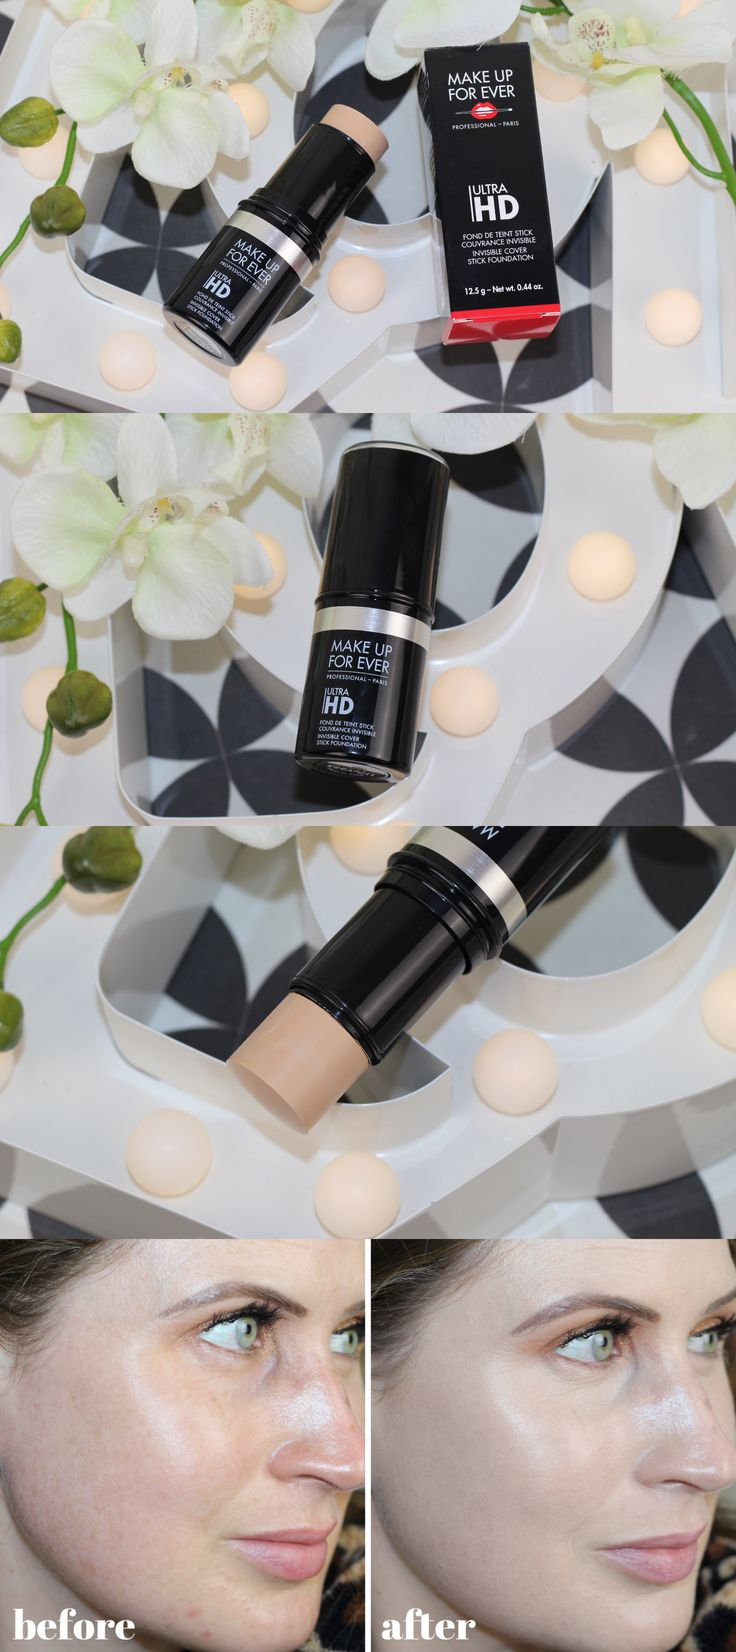 Make Up Forever HD Foundation Stick Review and Photos #mufe #makeupforever #hdfo…